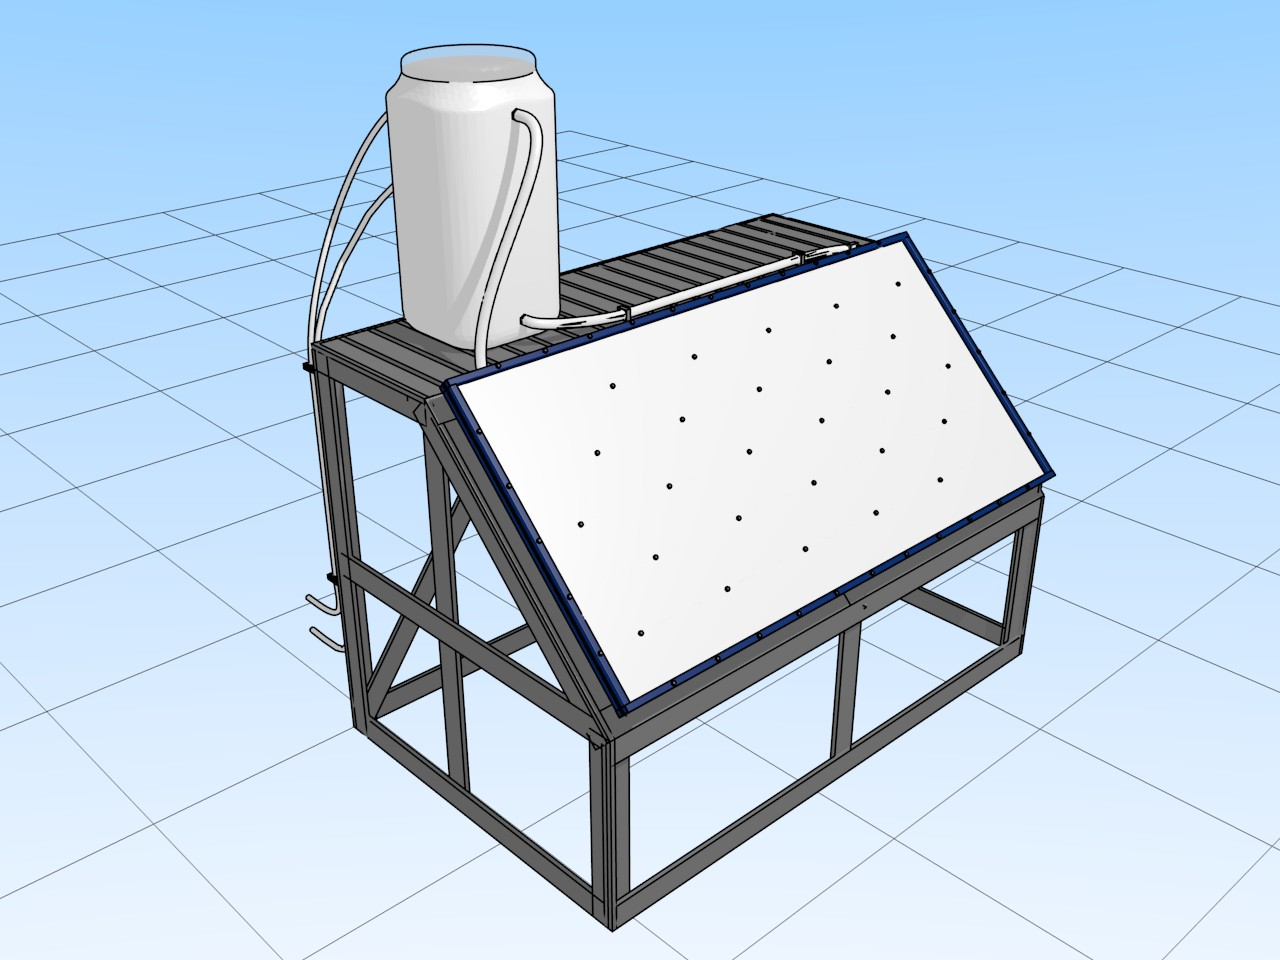 Oseg swh solar-water-heater view1.jpg